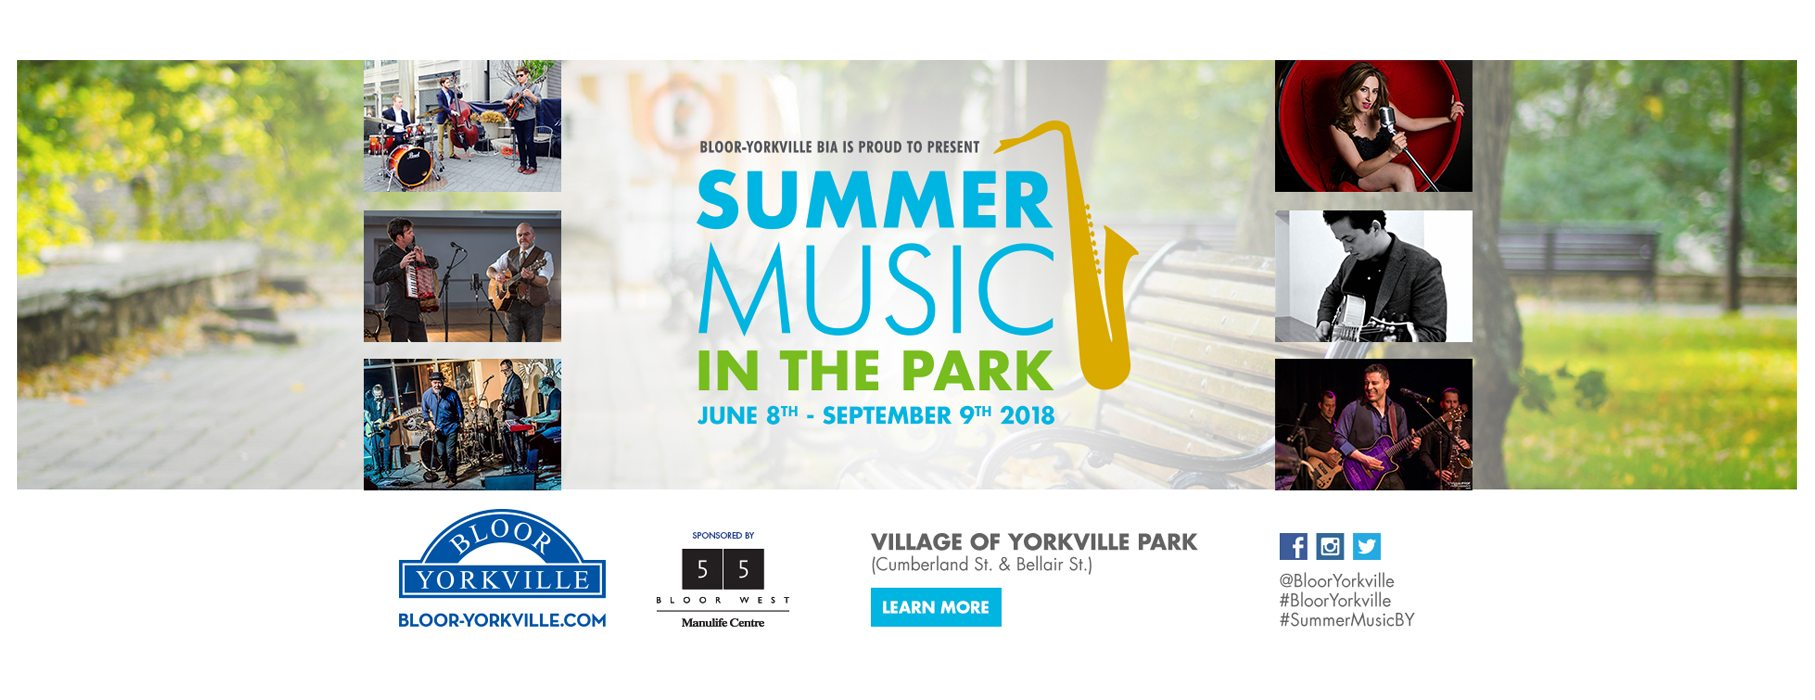 Summer Music in the Park Returns June 8th!